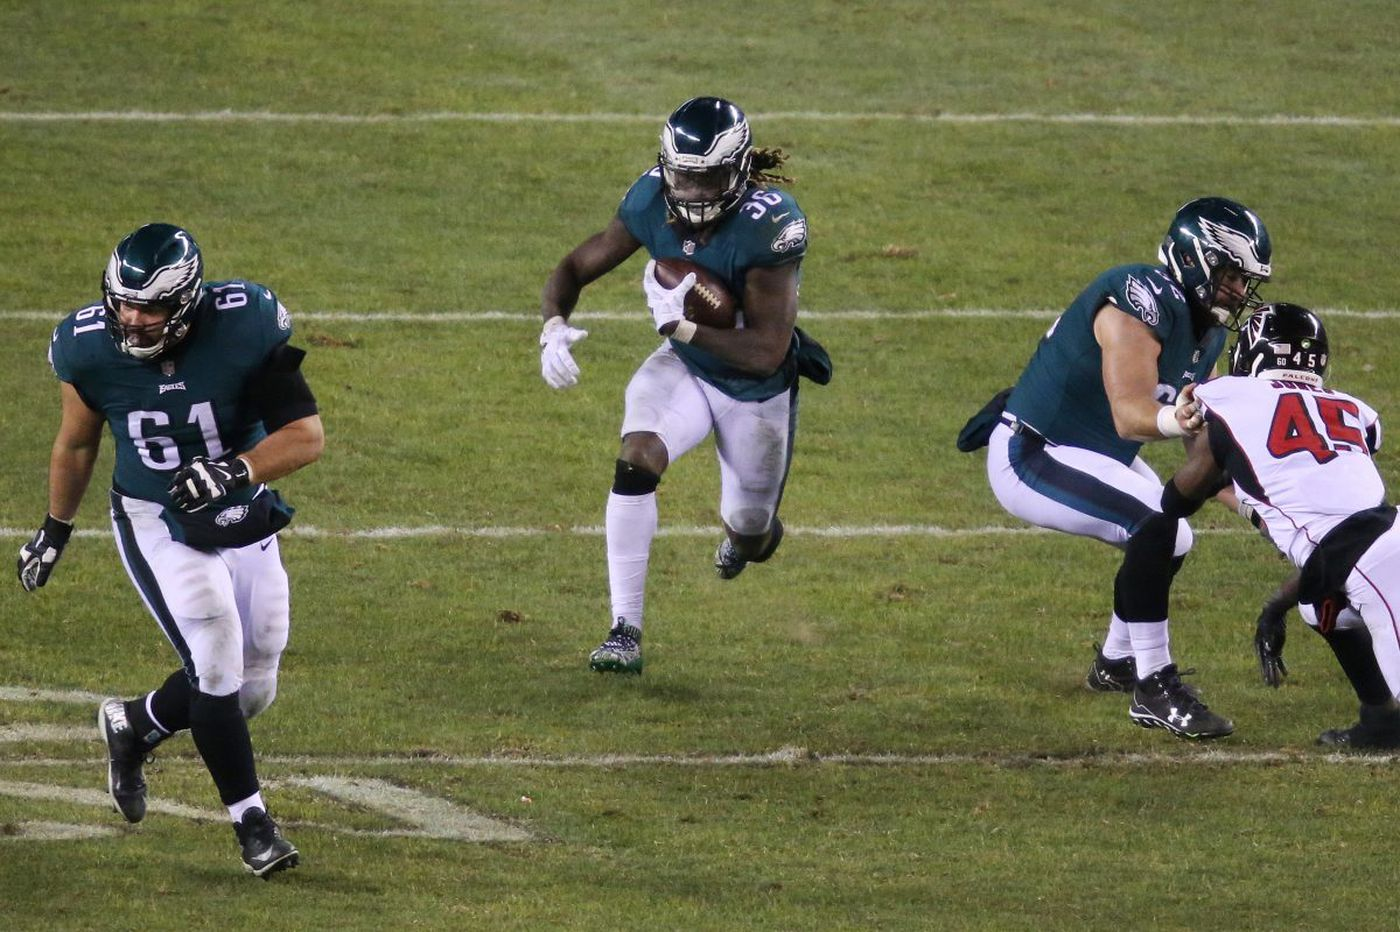 'Poison' punt was nearly deadly for Eagles, but Bryan Braman bounced back